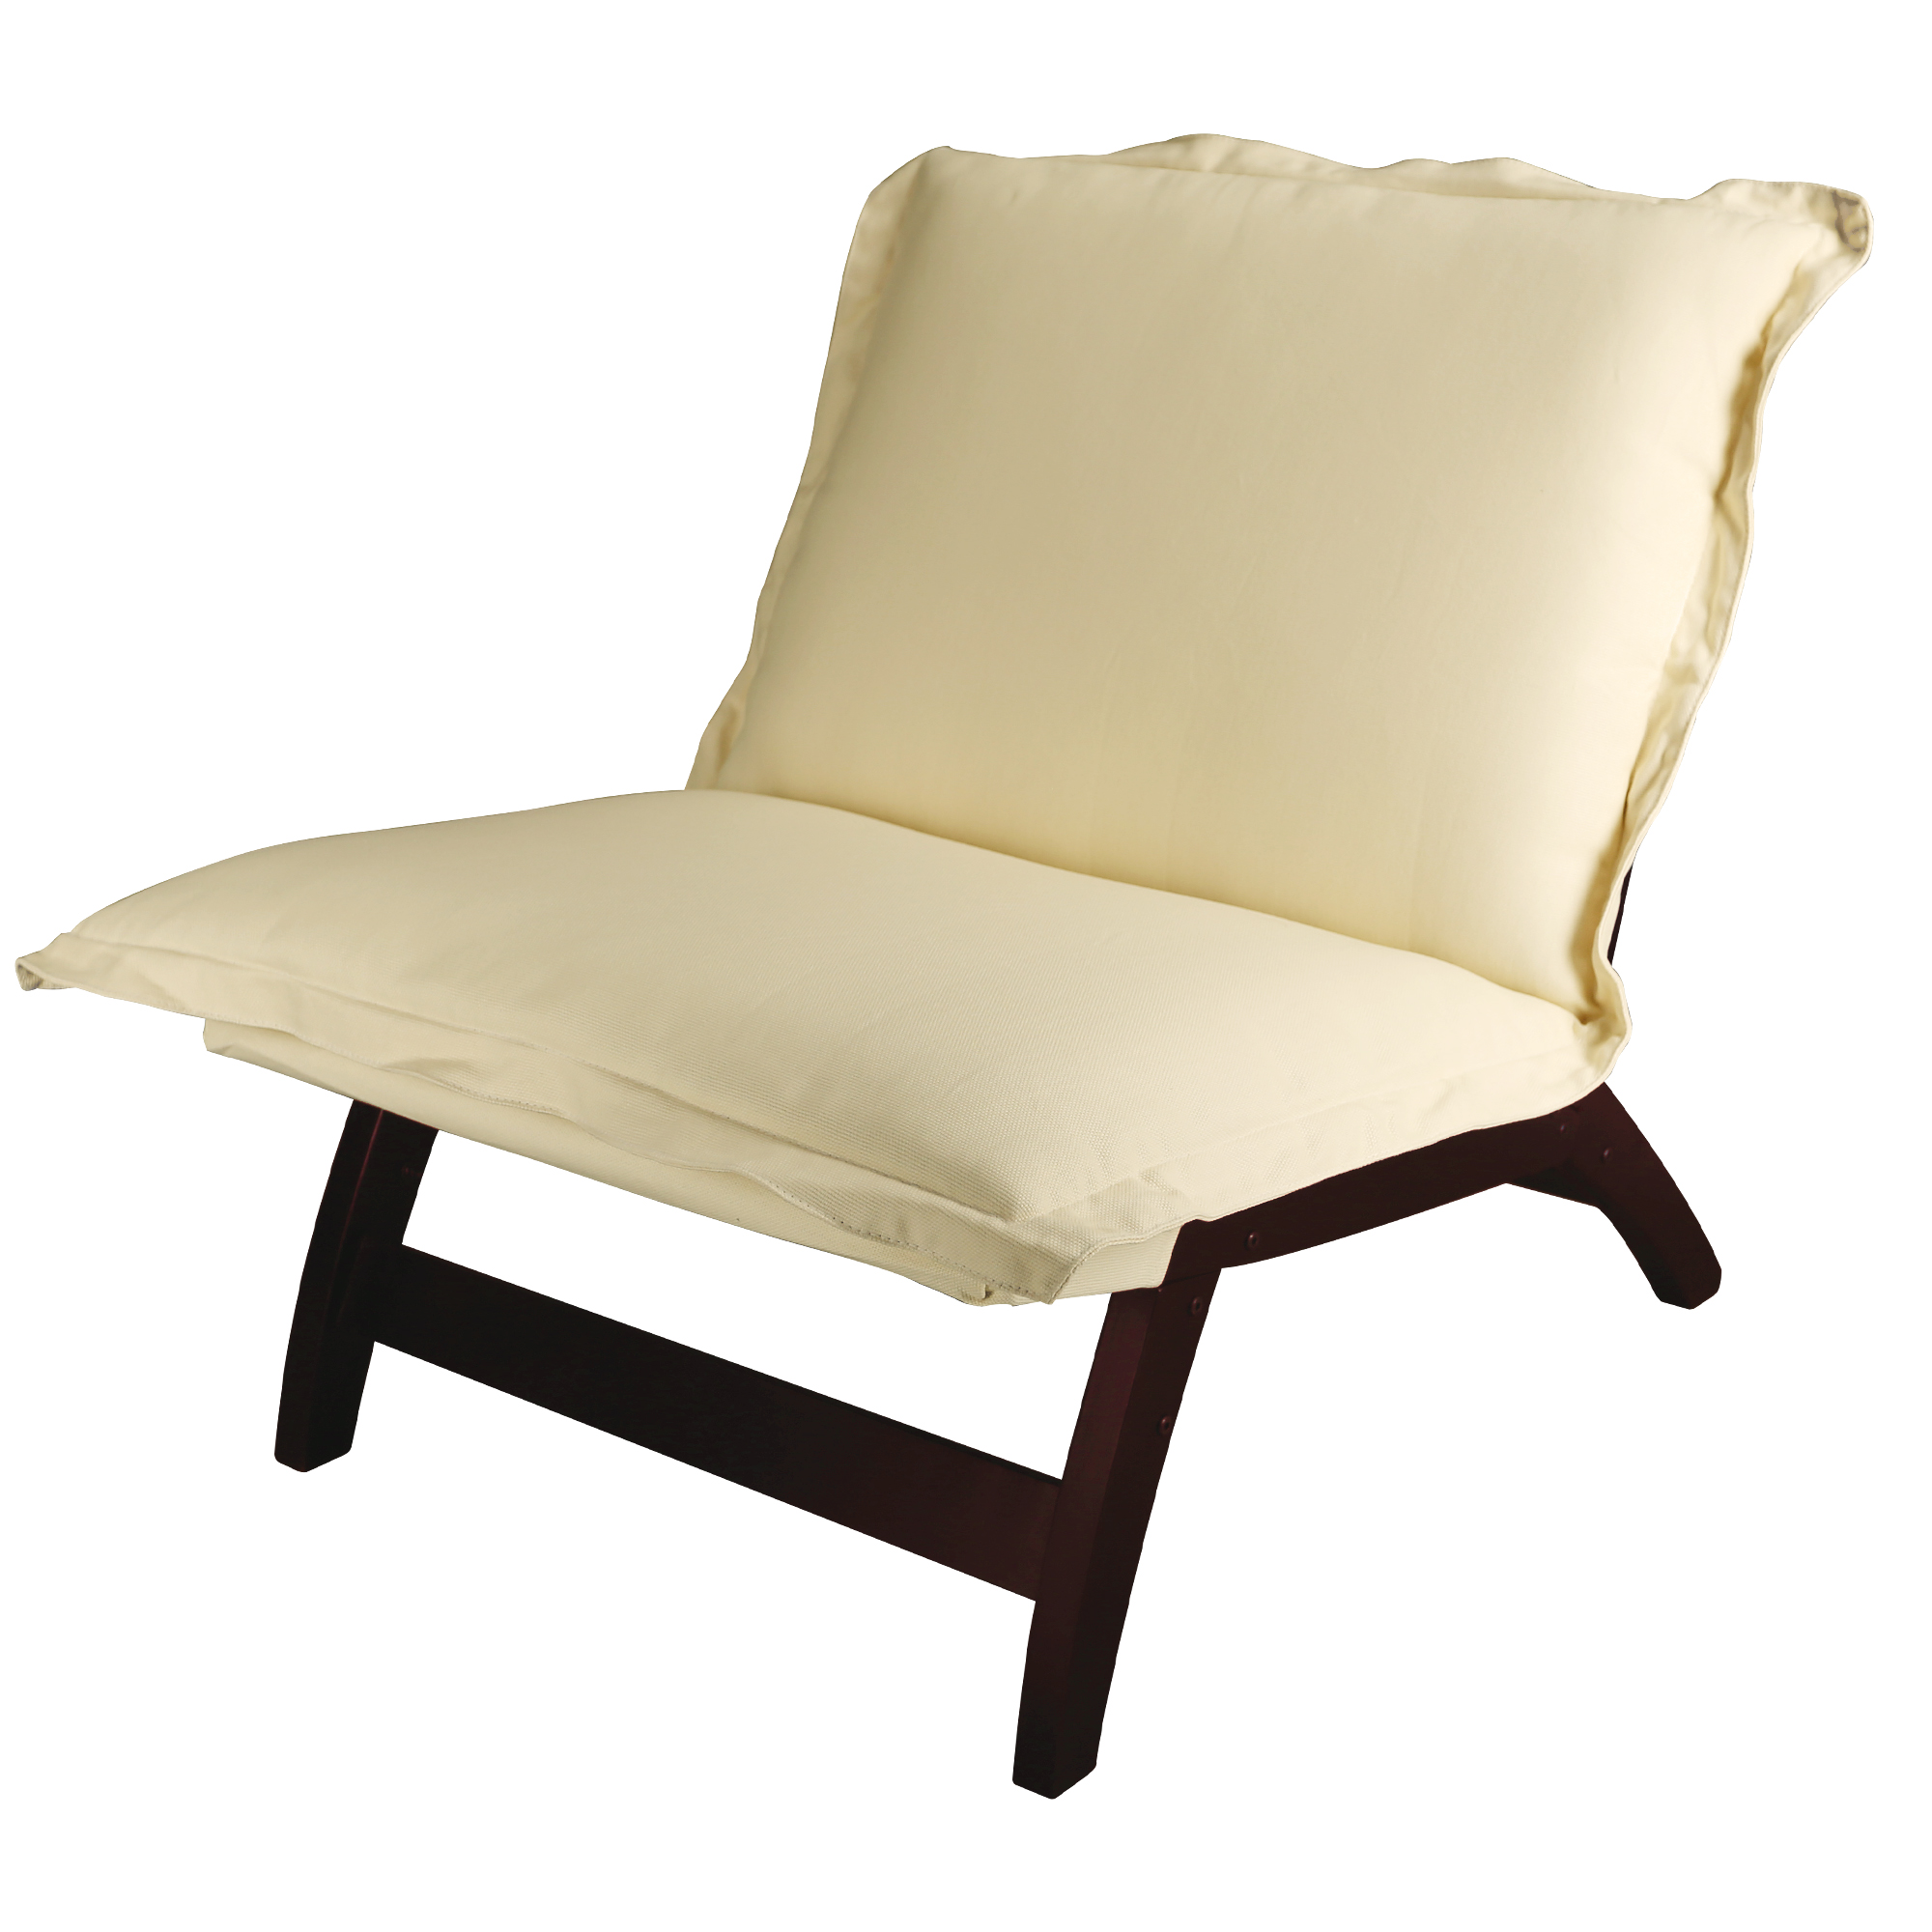 Fullsize Of Comfort Lounger Chair